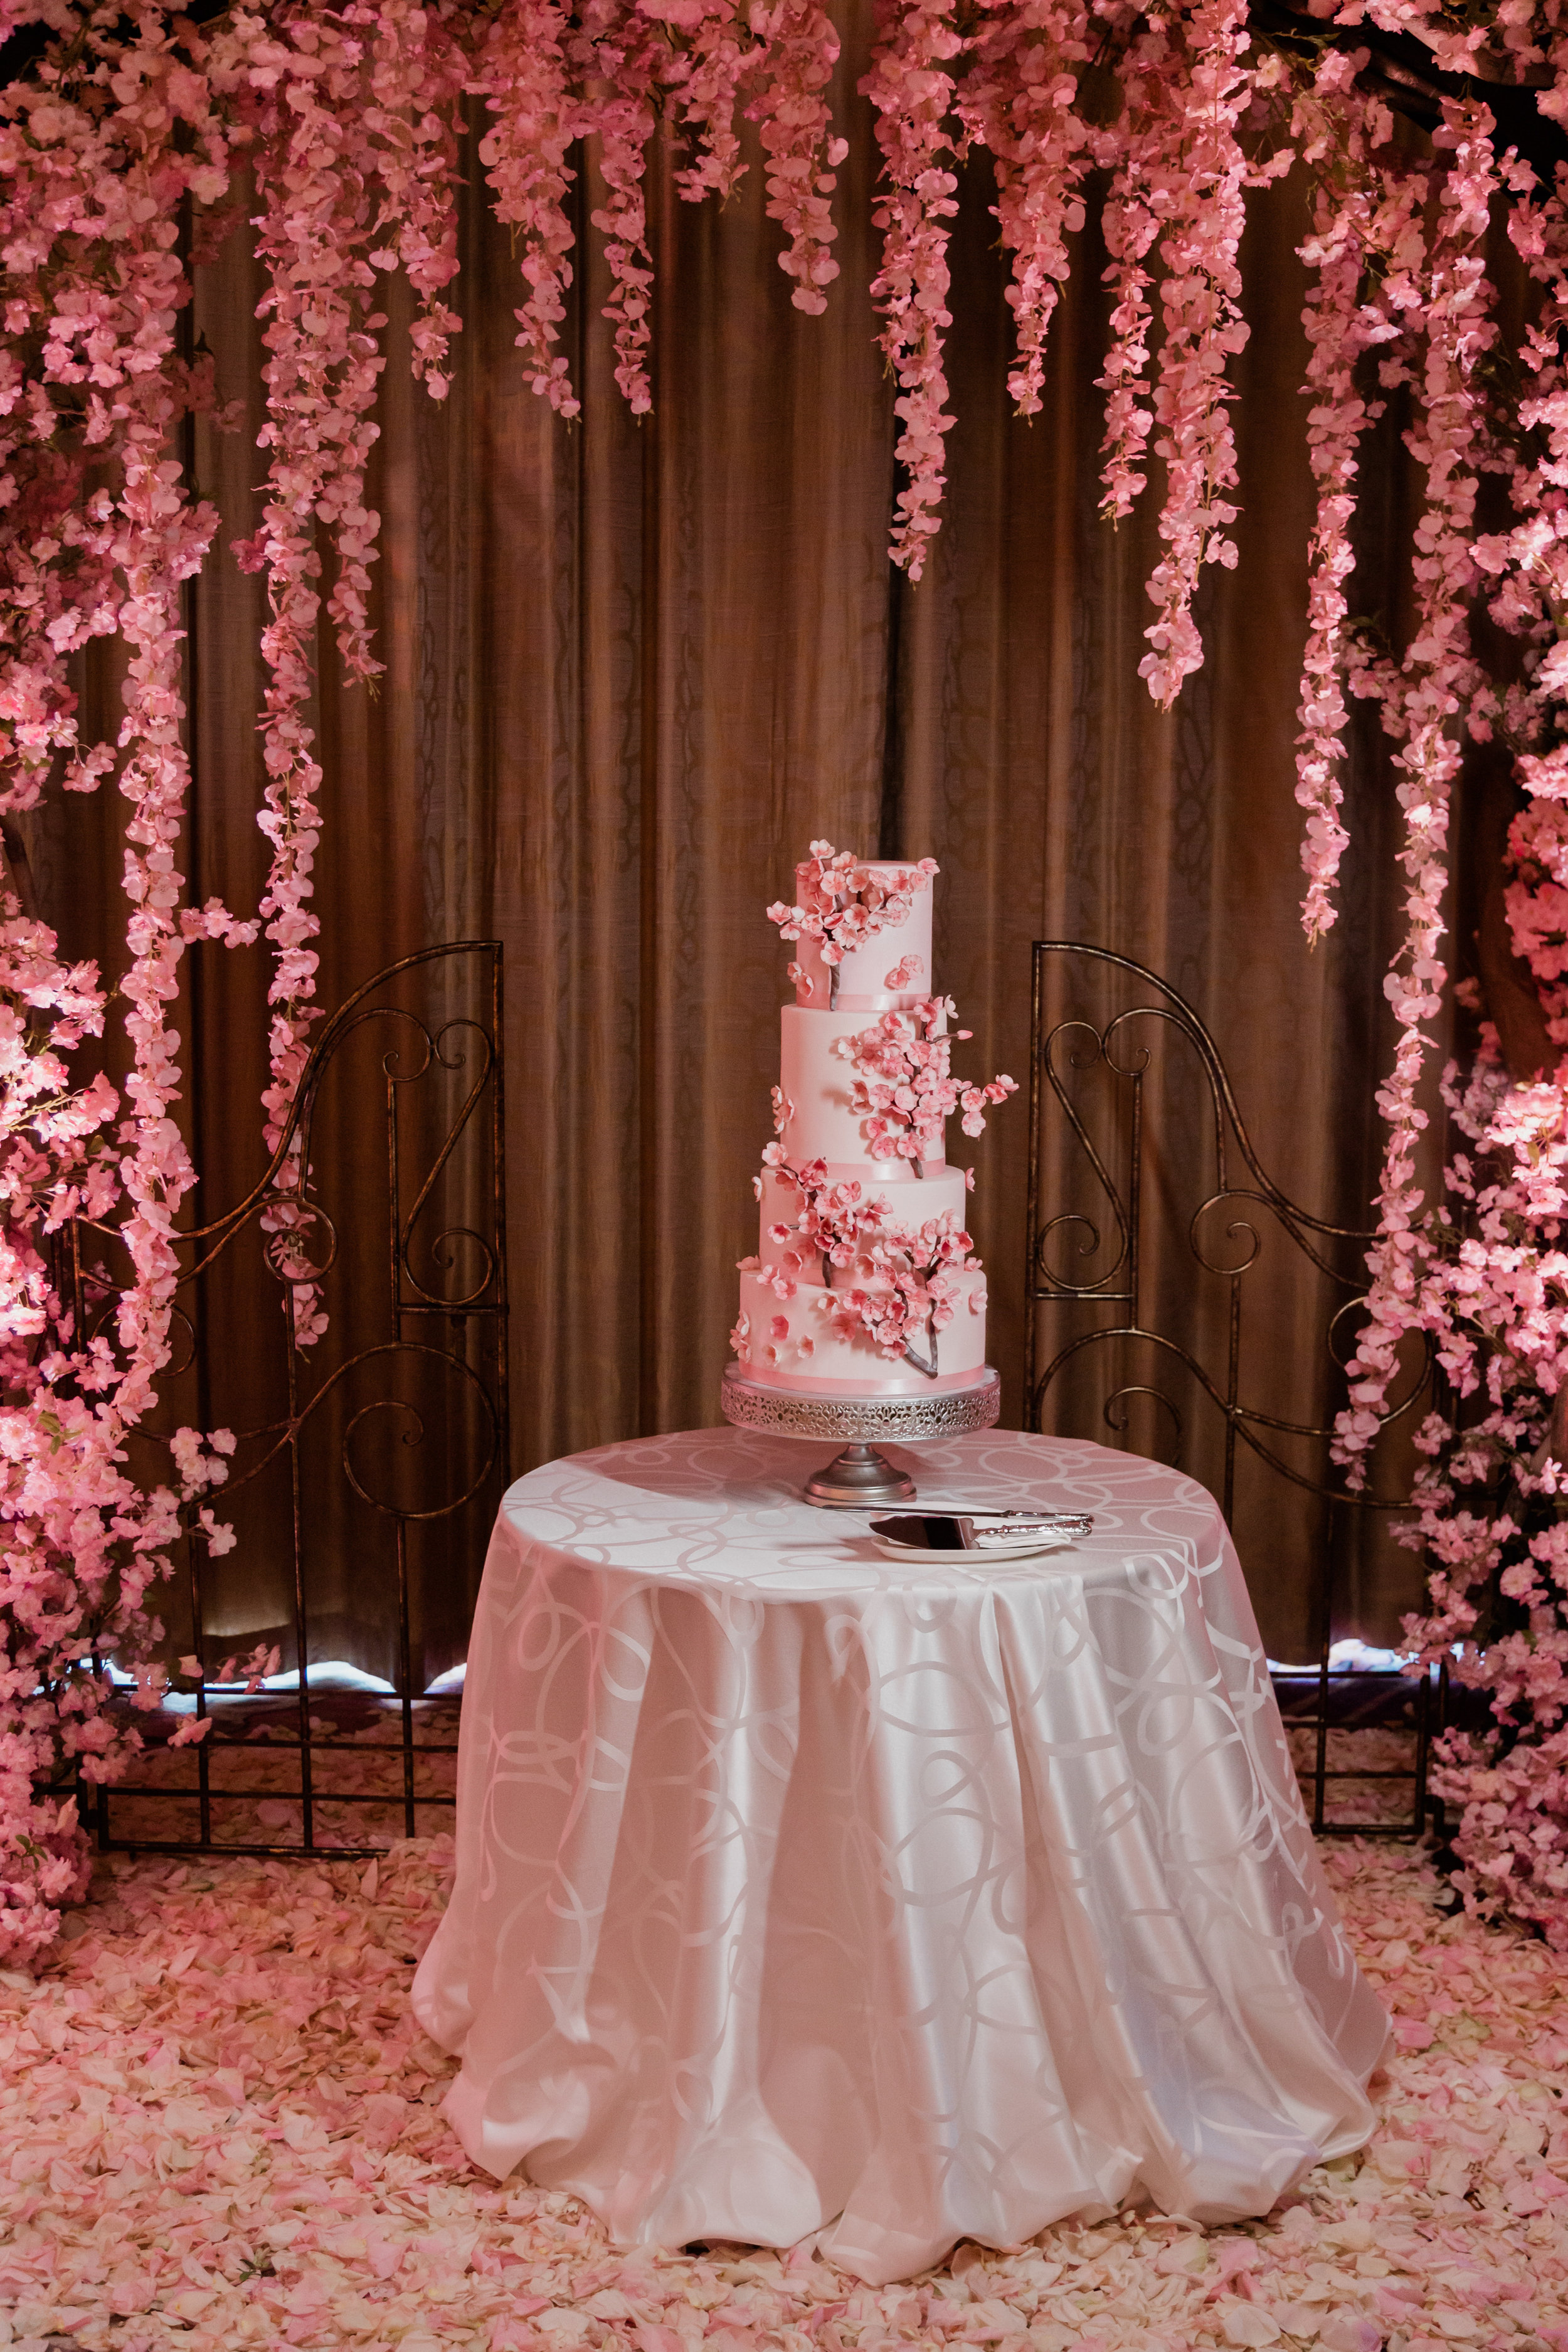 Cherry blossom wedding cake surrounded by pink flowers. Las Vegas Wedding Planner Andrea Eppolito. Photo by Adam Frazier.